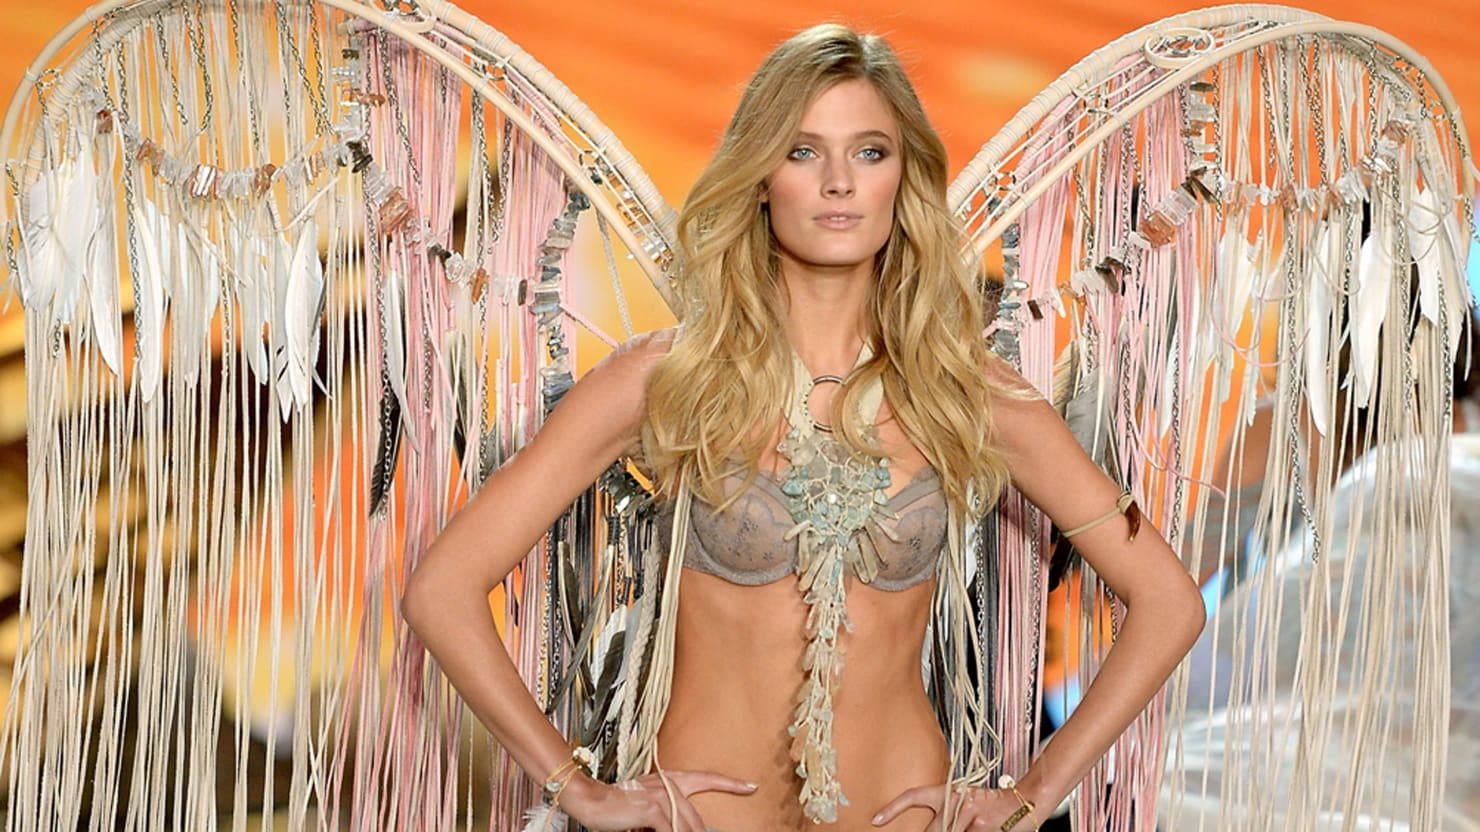 Backstage With the Victoria's Secret Angels